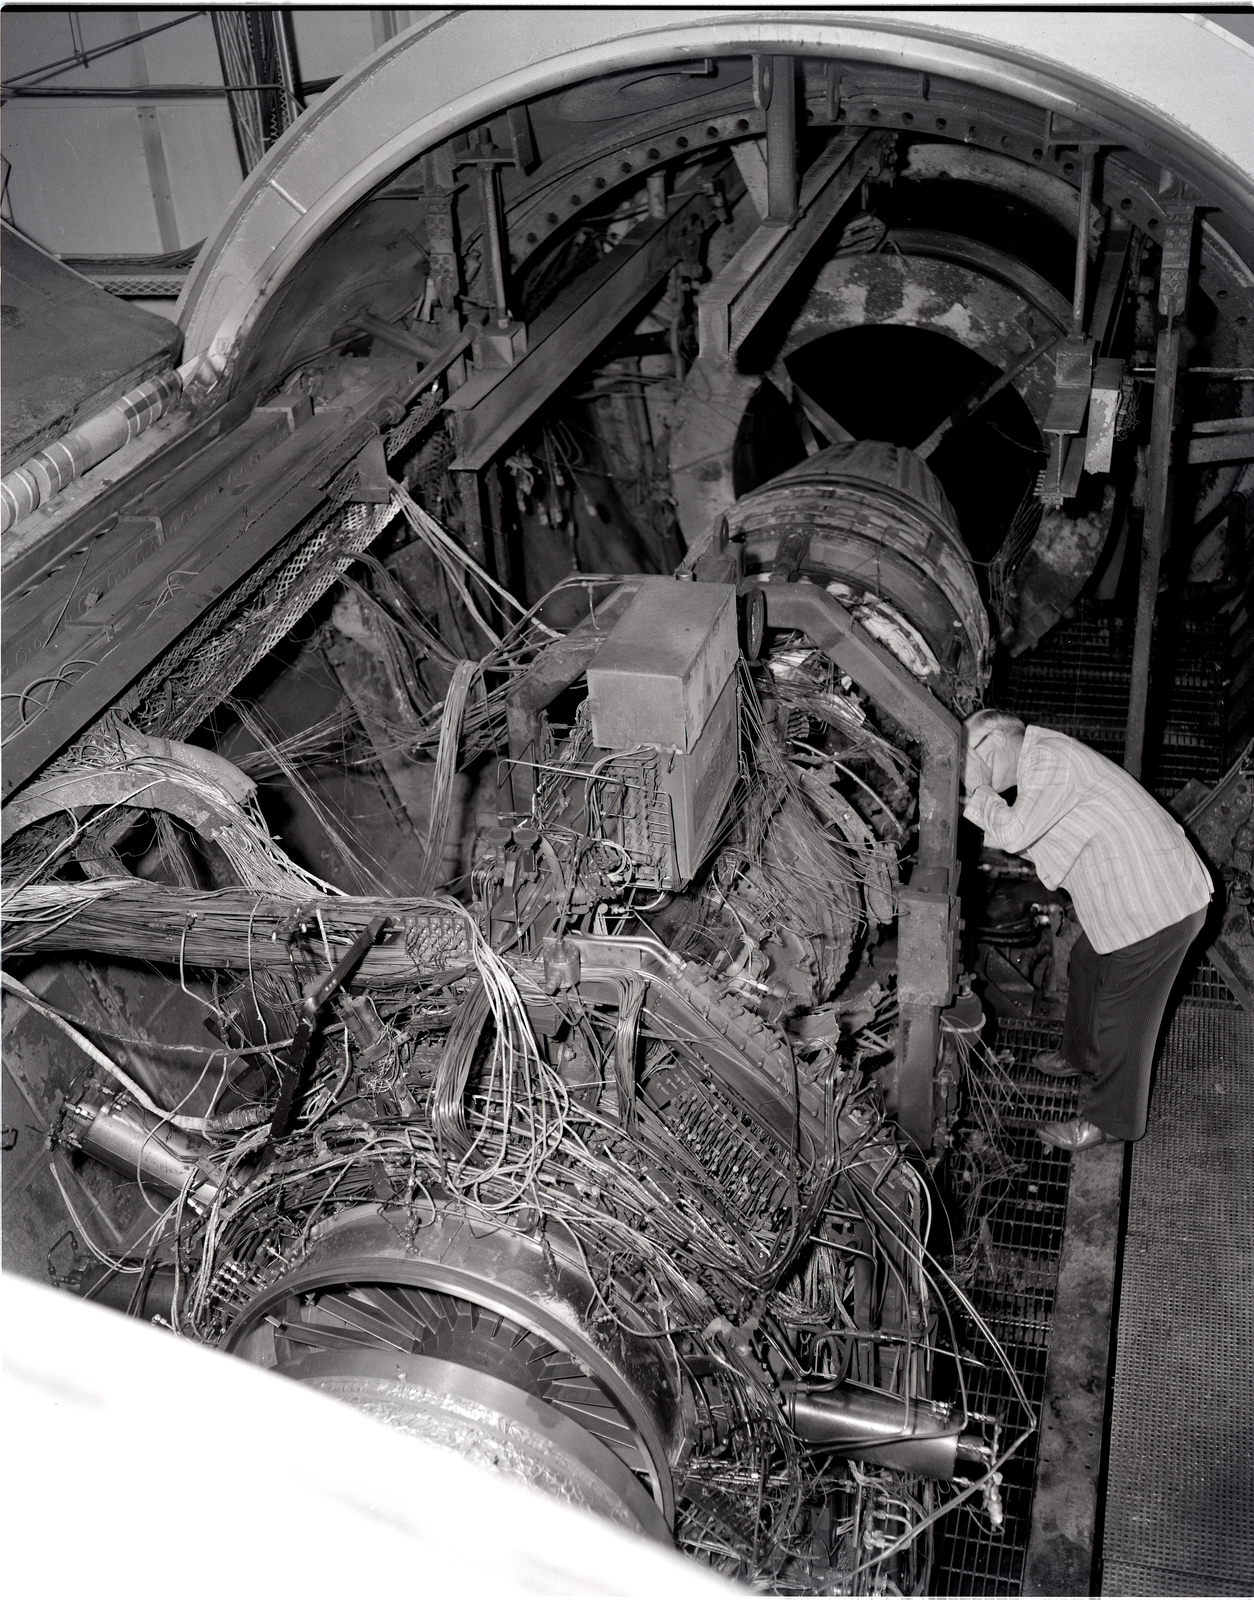 DESTRUCTIVE ENGINE FAILURE OF F-100 AT THE PROPULSION SYSTEMS LABORATORY SHOP AND ACCESS PSLSA